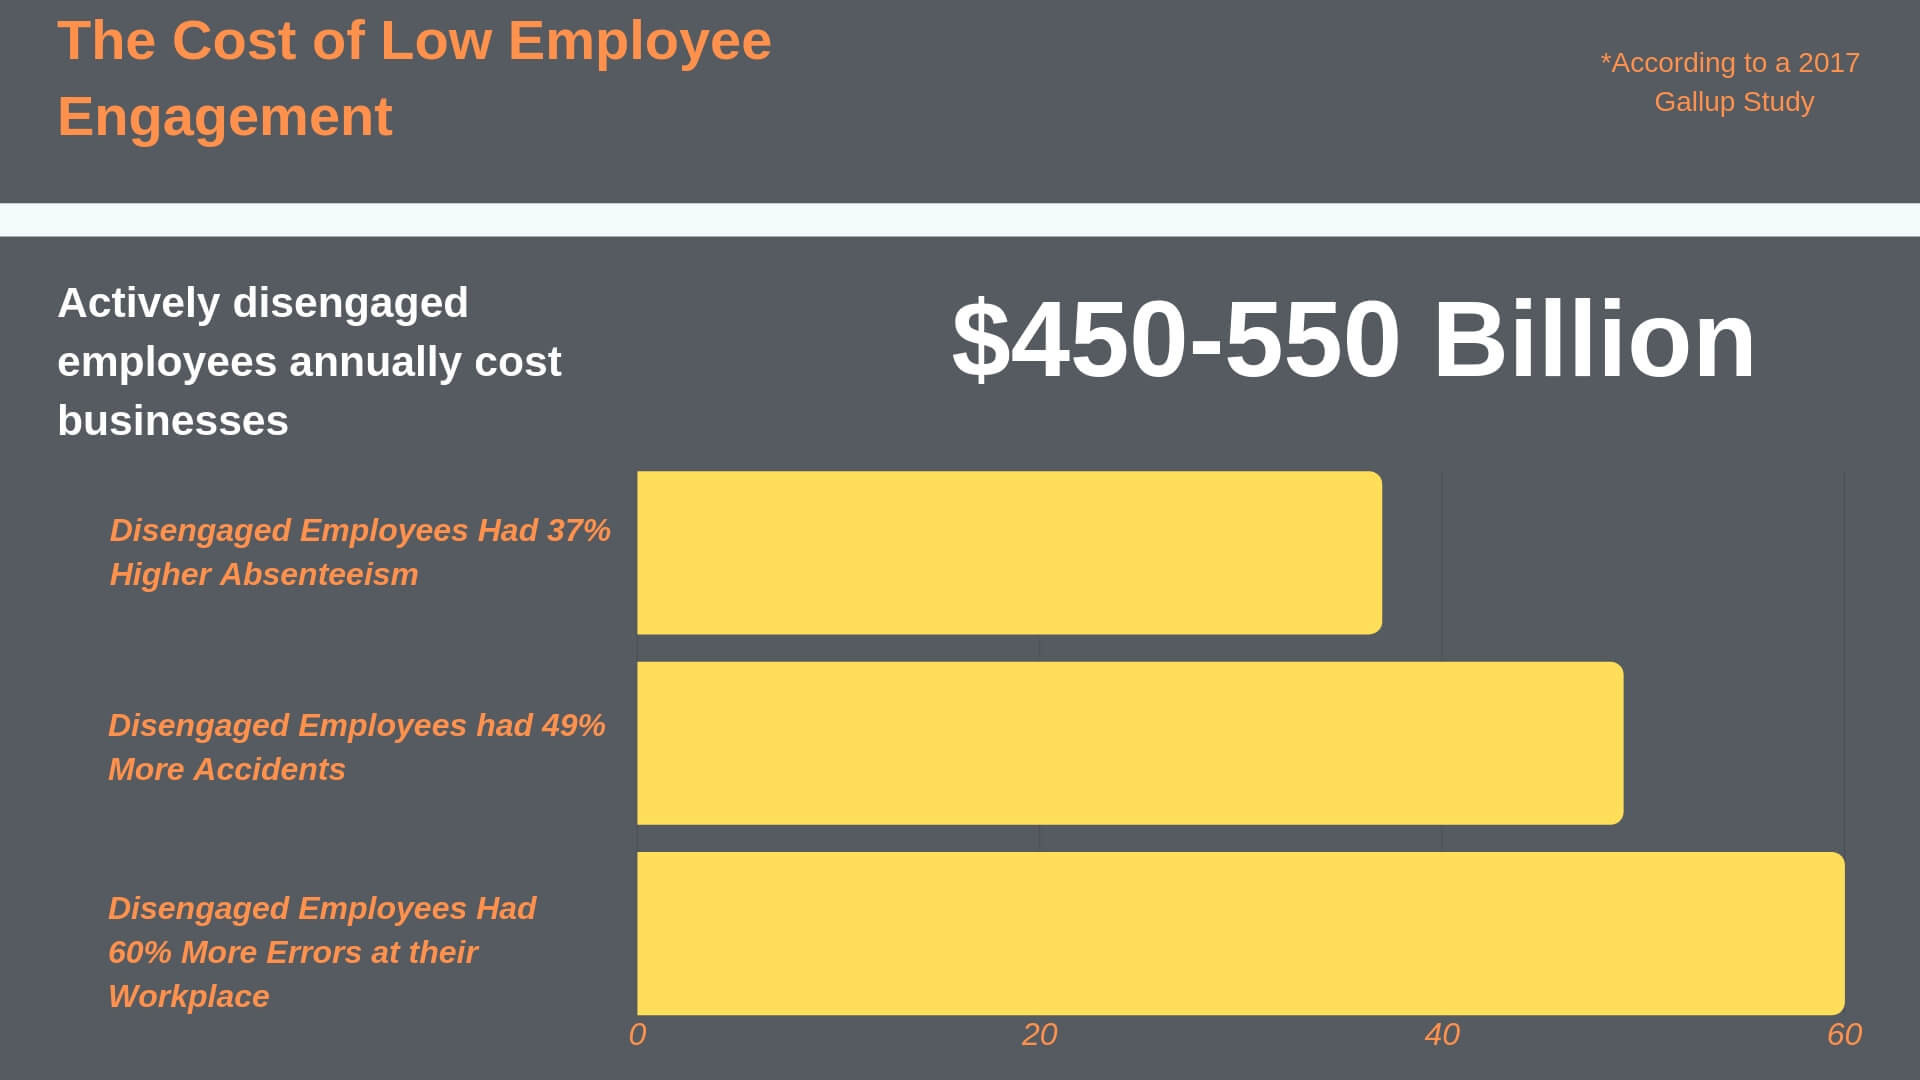 the cost of low employee engagement graph